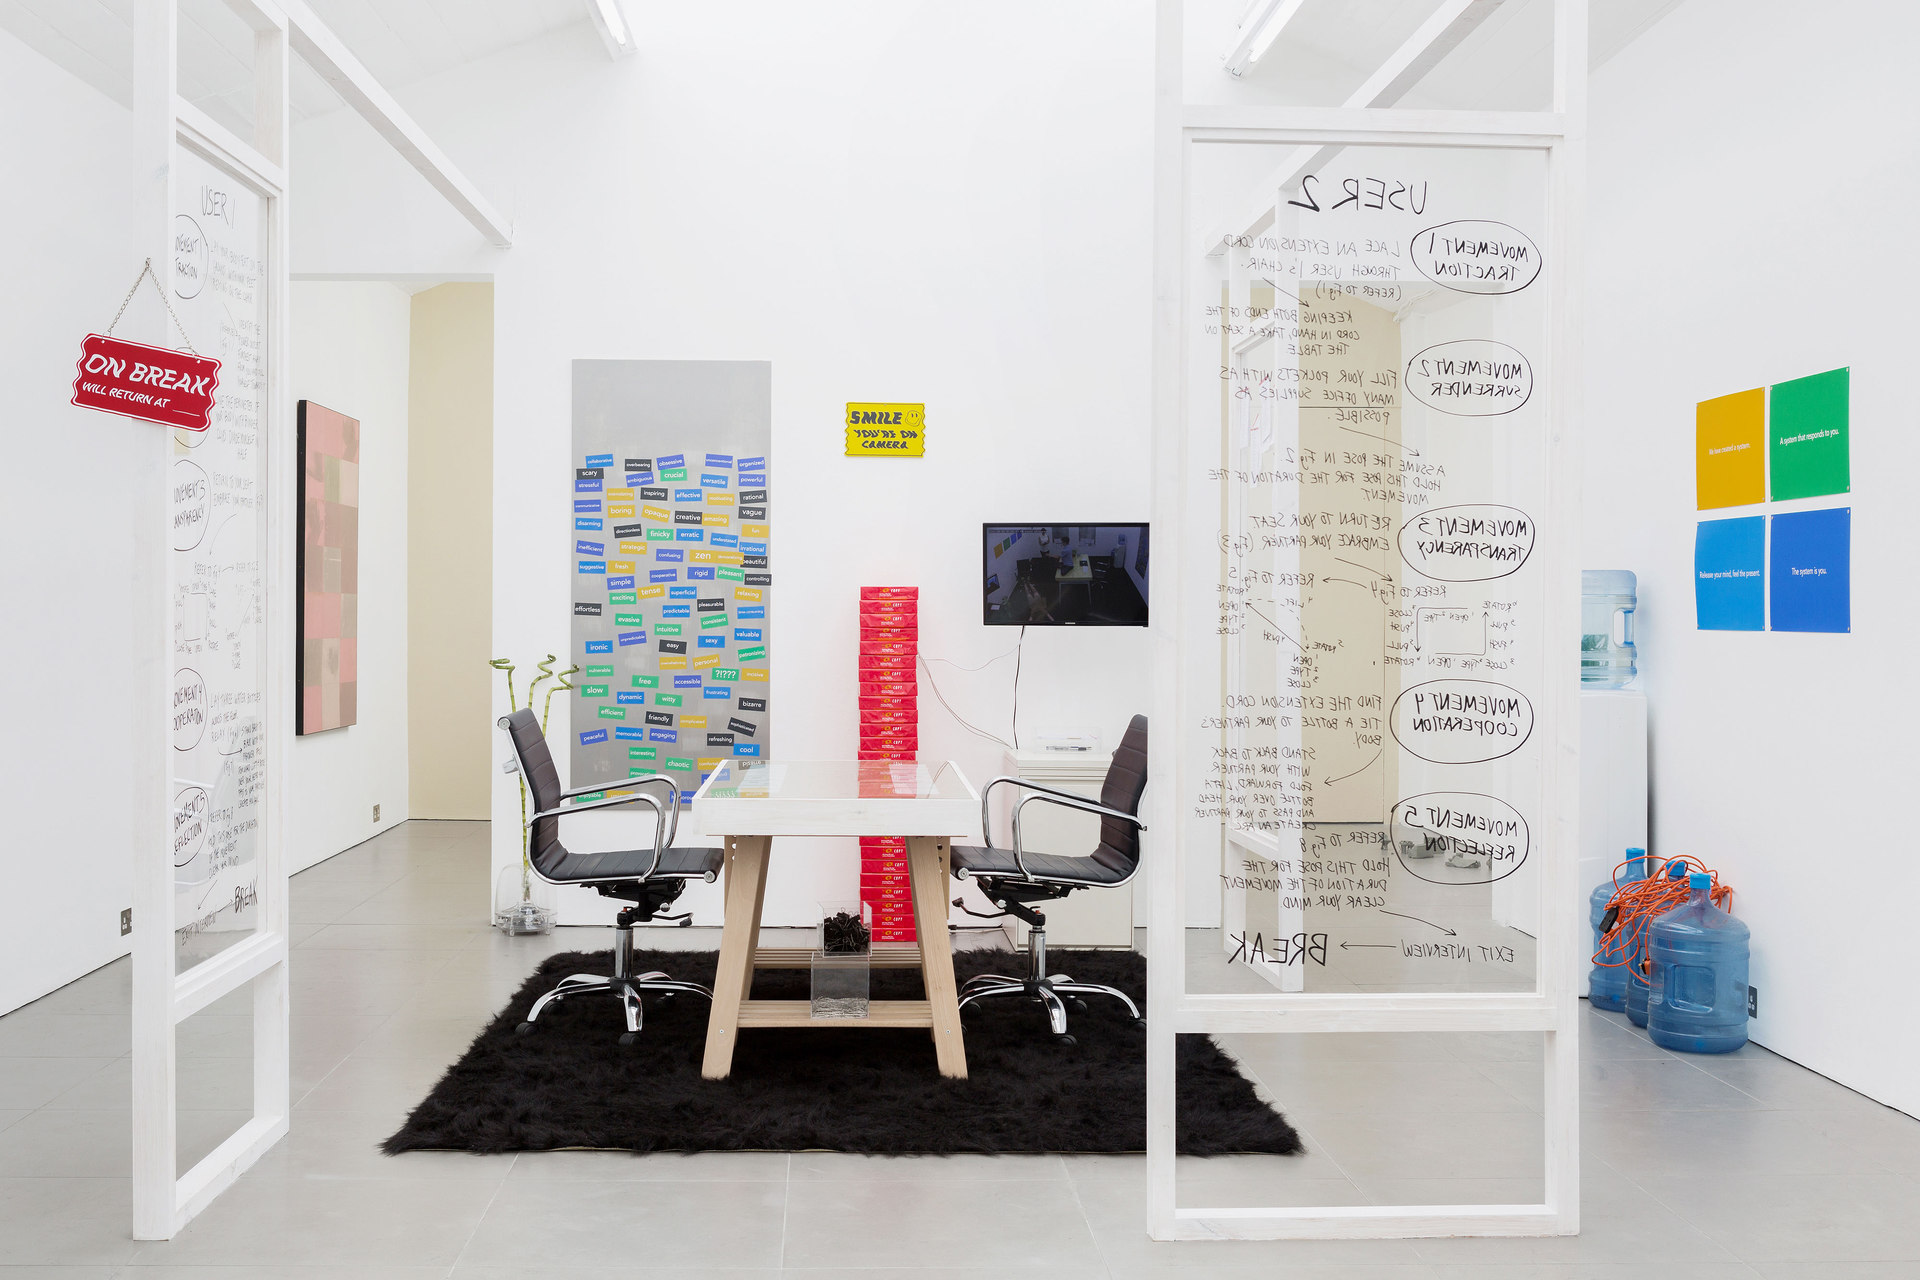 Essex Olivares, Office Riddim, 2013 - 2014, Performance Cell Project Space, 2015